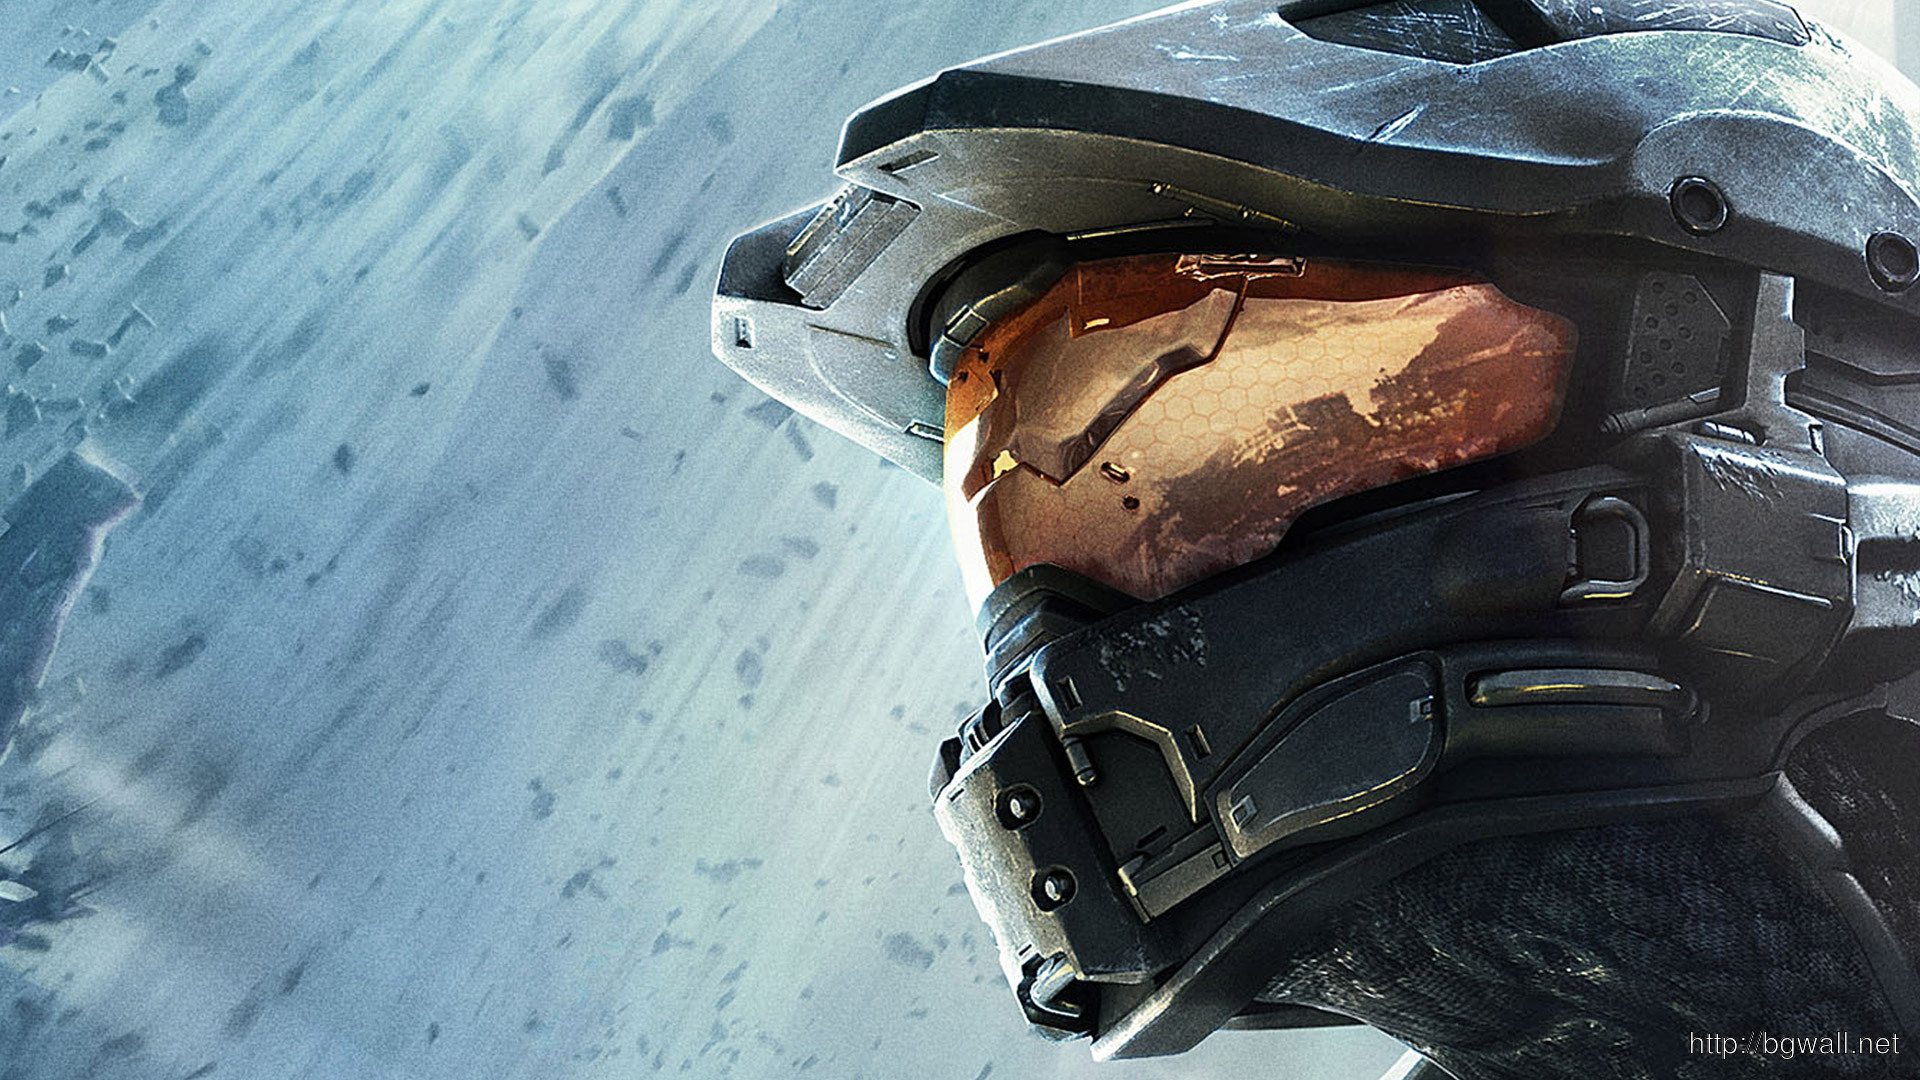 Halo 4 Helm Wallpapers Full Size